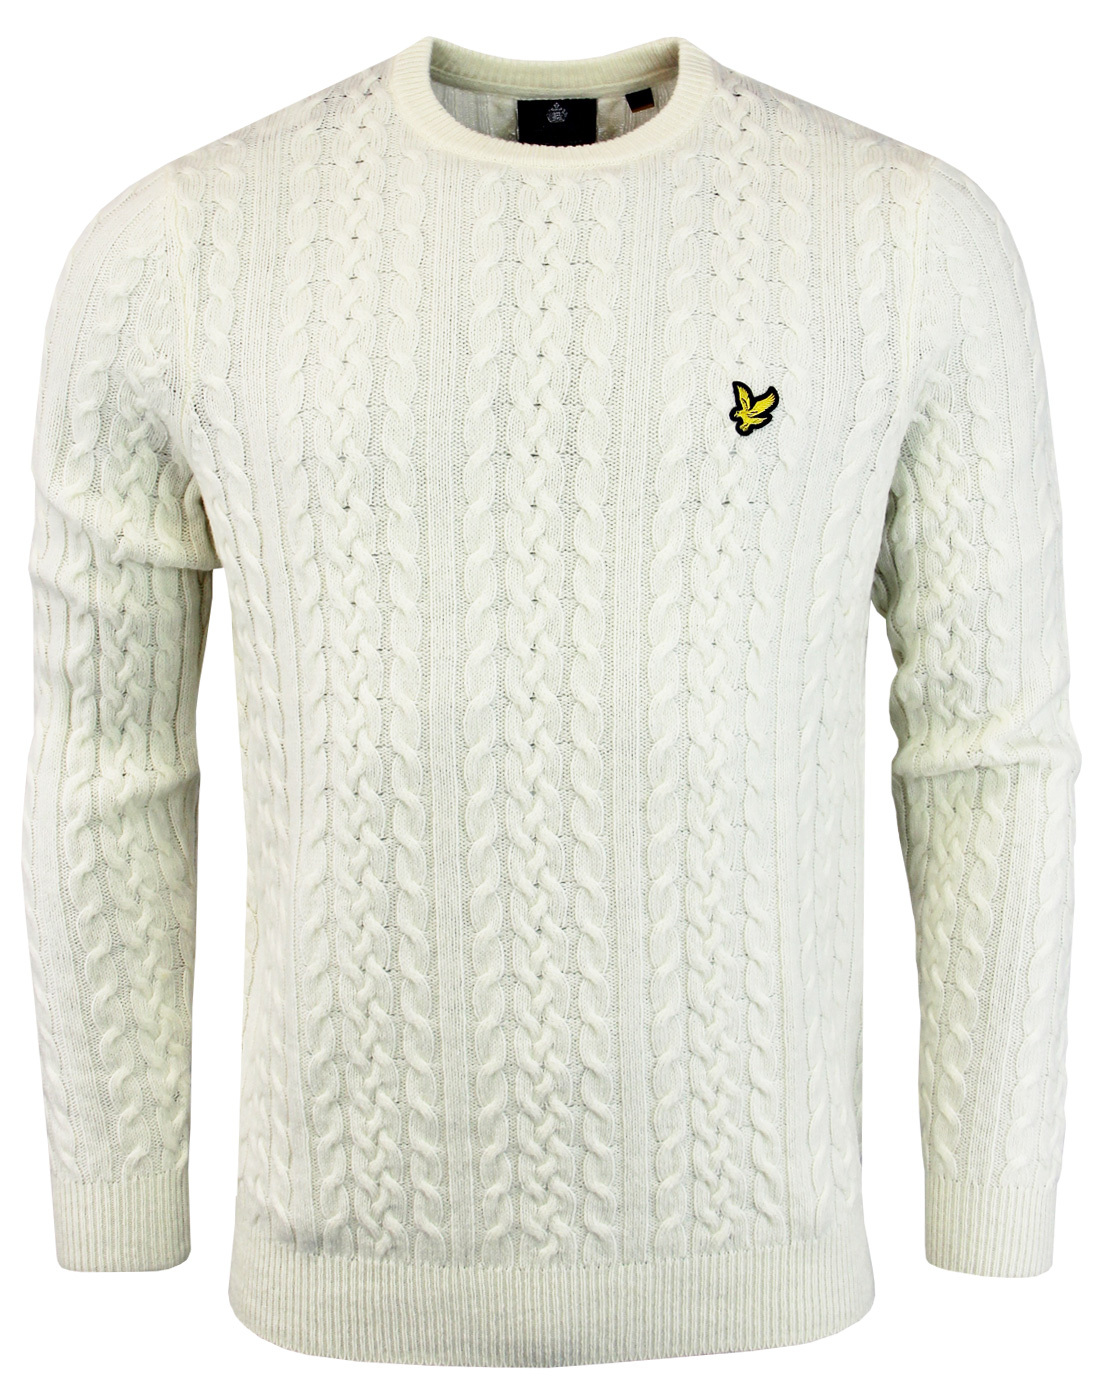 LYLE & SCOTT 60s Mod Lambswool Cable Knit Jumper